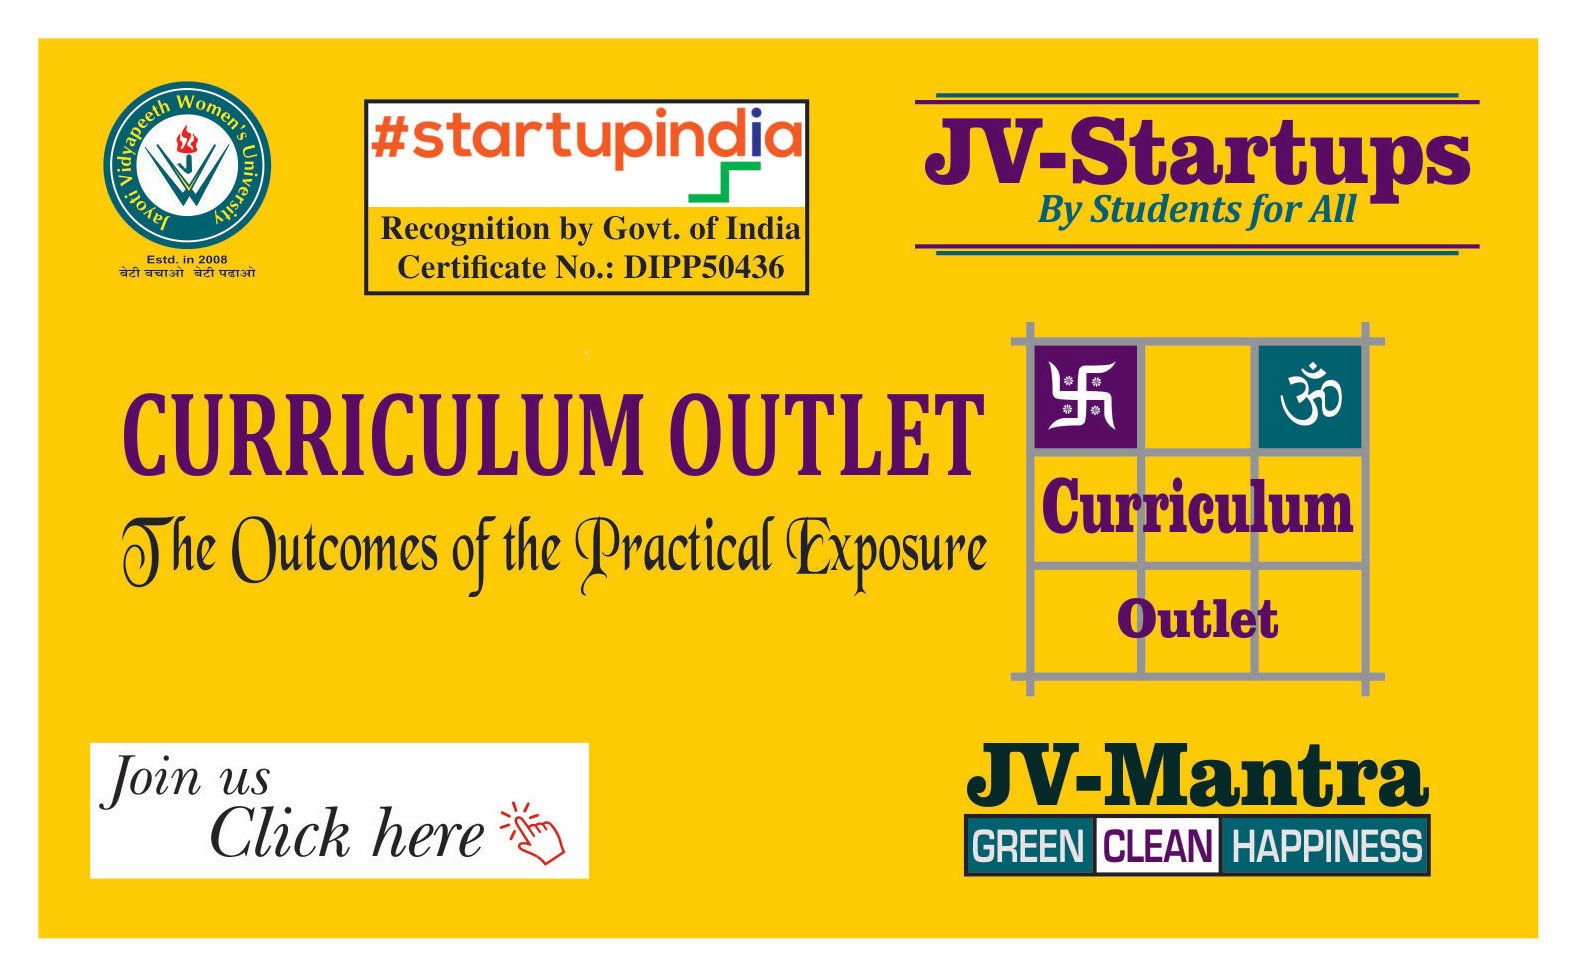 Curriculum Outlet